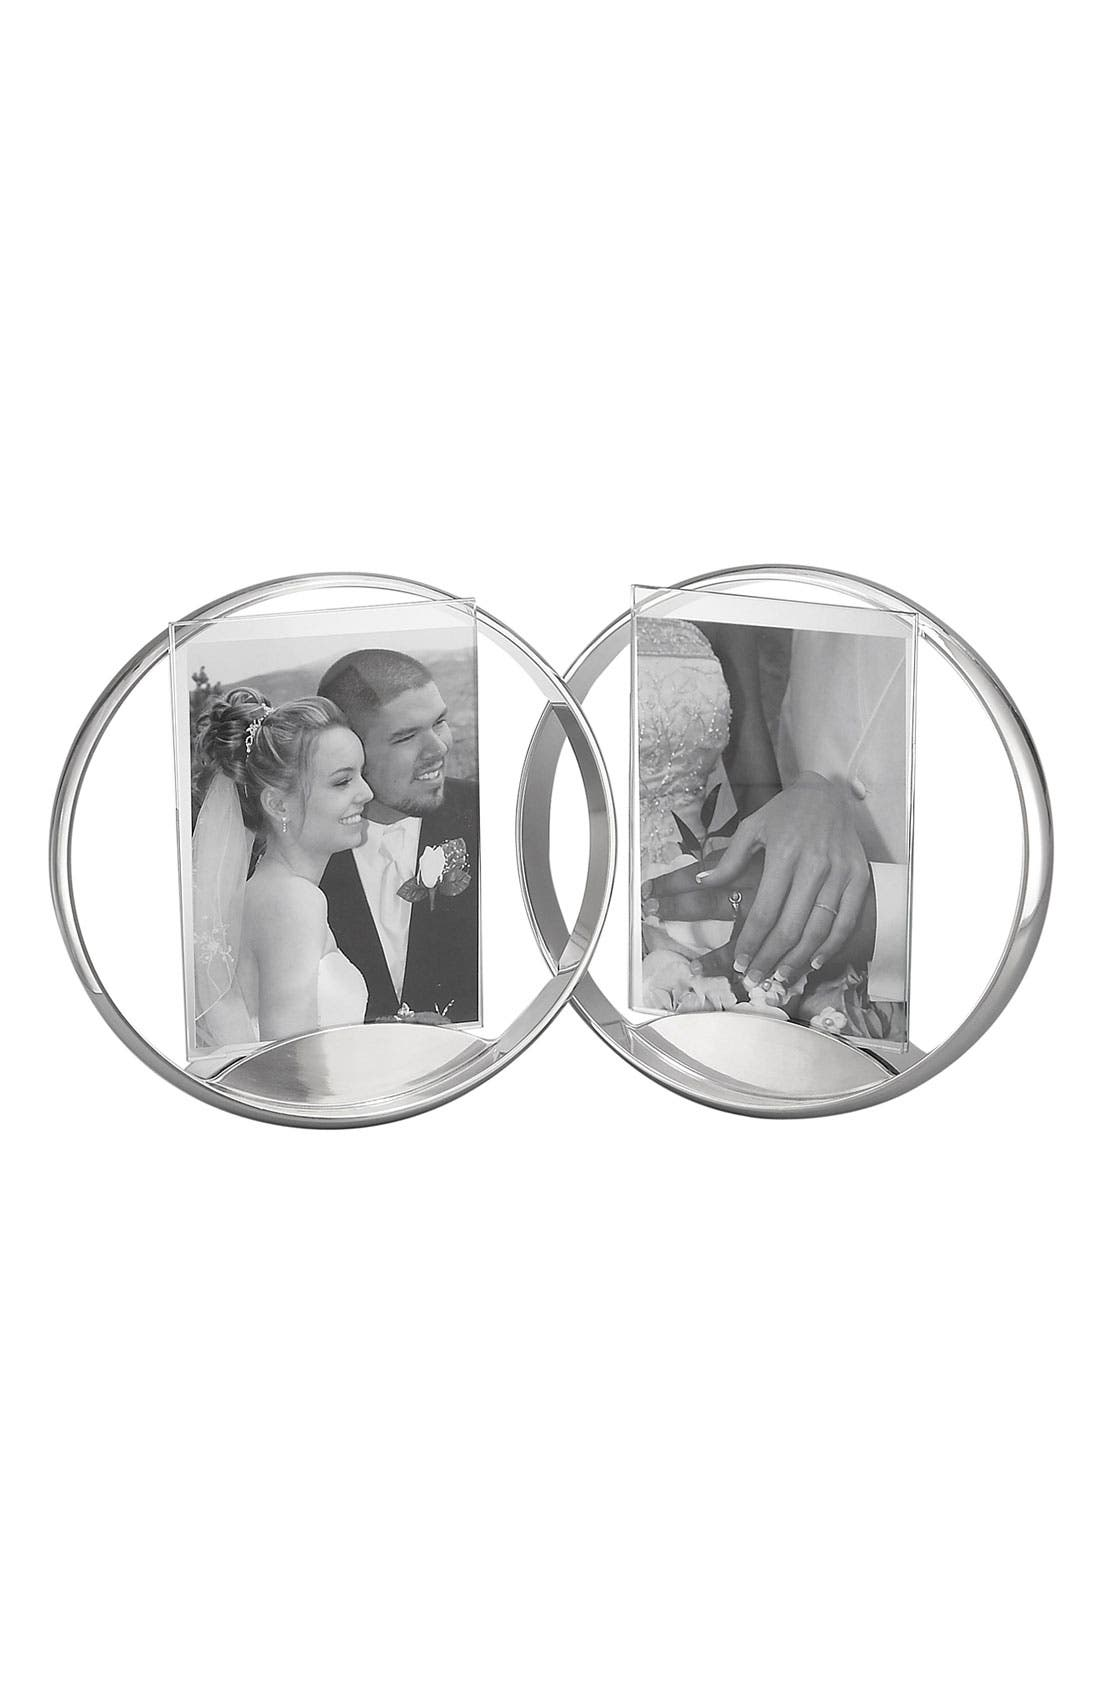 Main Image - Nambé 'Forever' Double Picture Frame (5x7)